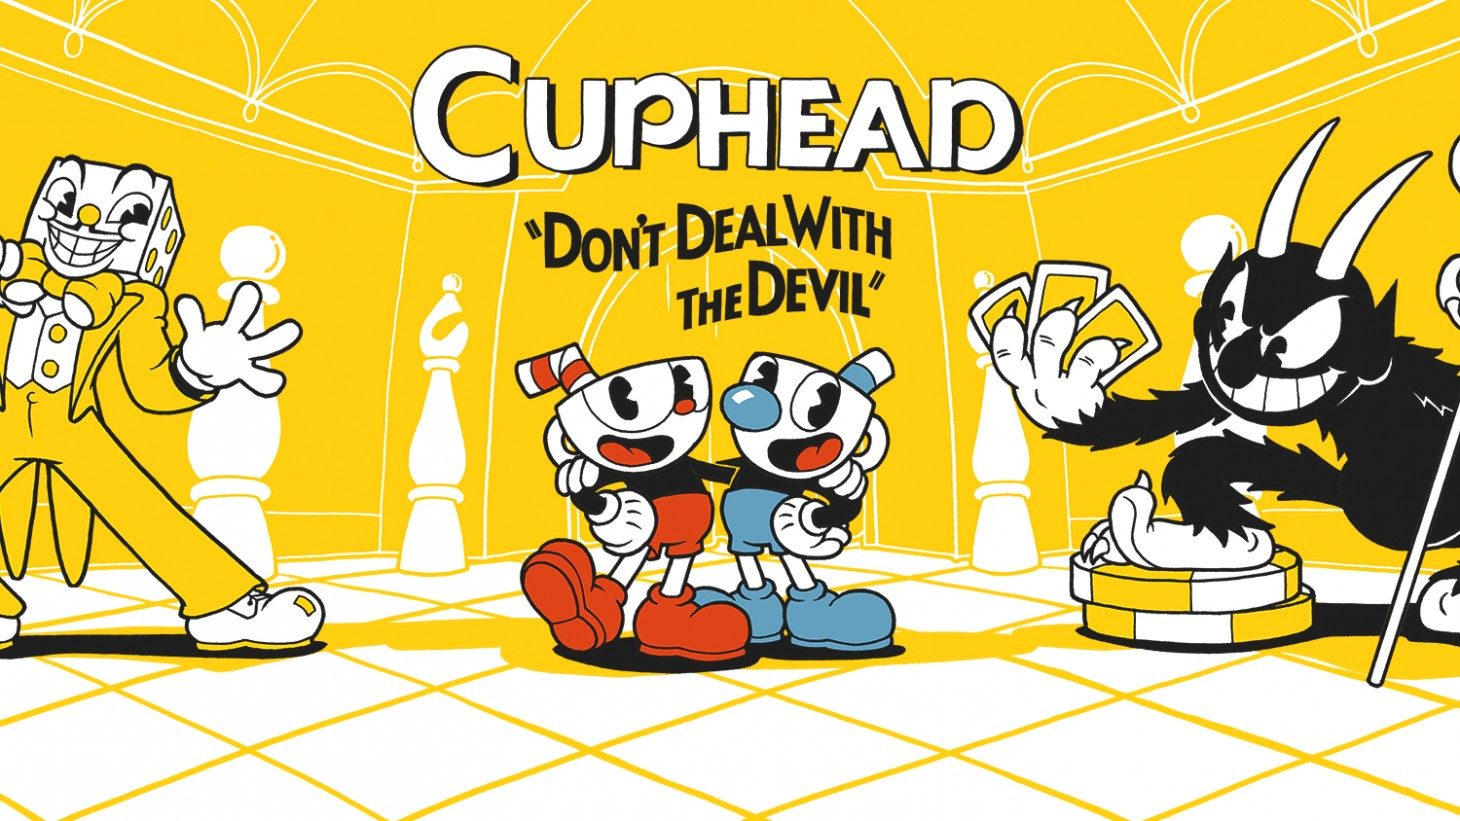 Cuphead Gets A Delicious Last Course - Game Informer